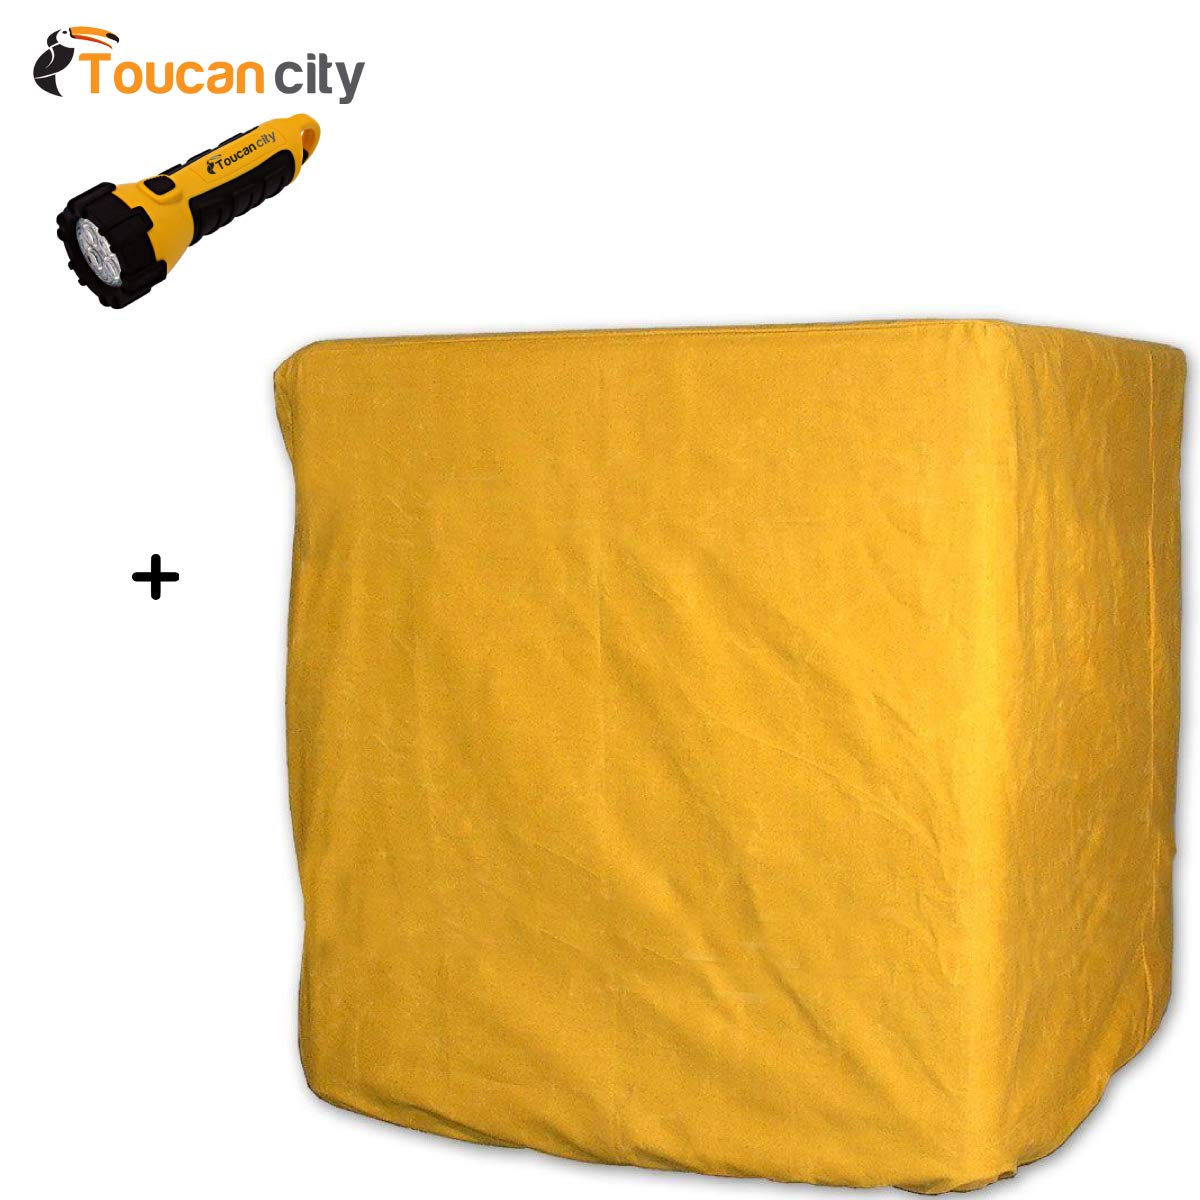 Toucan City LED Flashlight and Brian's Canvas Products 42 in. x 48 in. x 35 in. Evaporative Cooler Down Discharge Cover C424835DD Toucan City + C424835DD